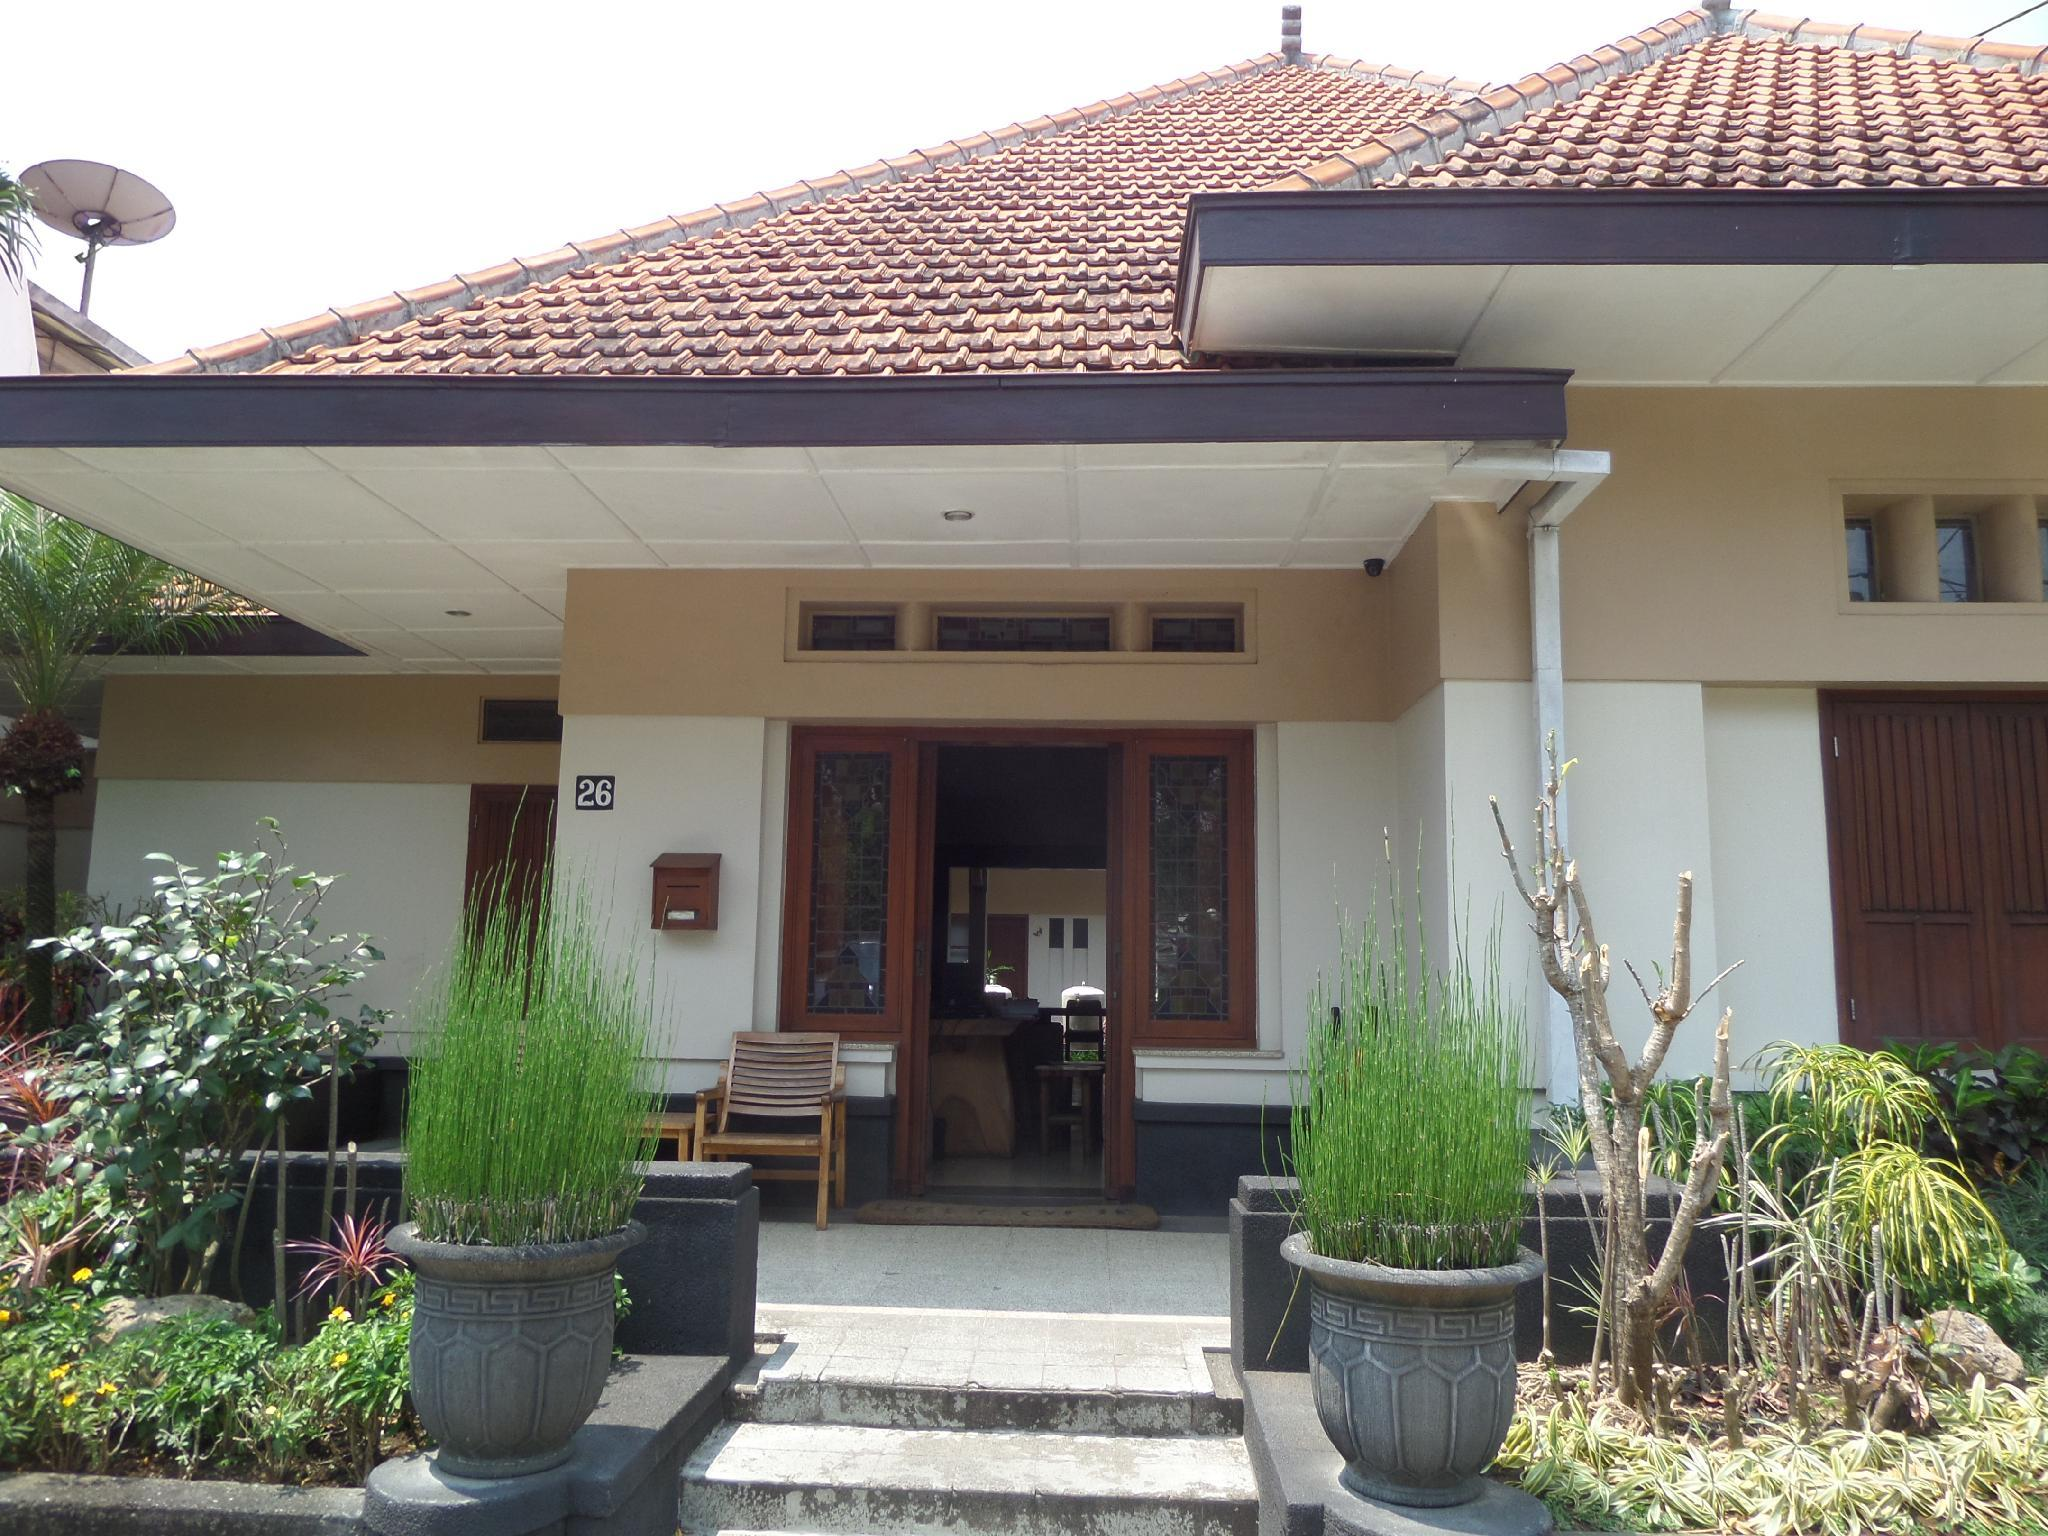 Book Merbabu Guest House Malang 2019 Prices From A 22